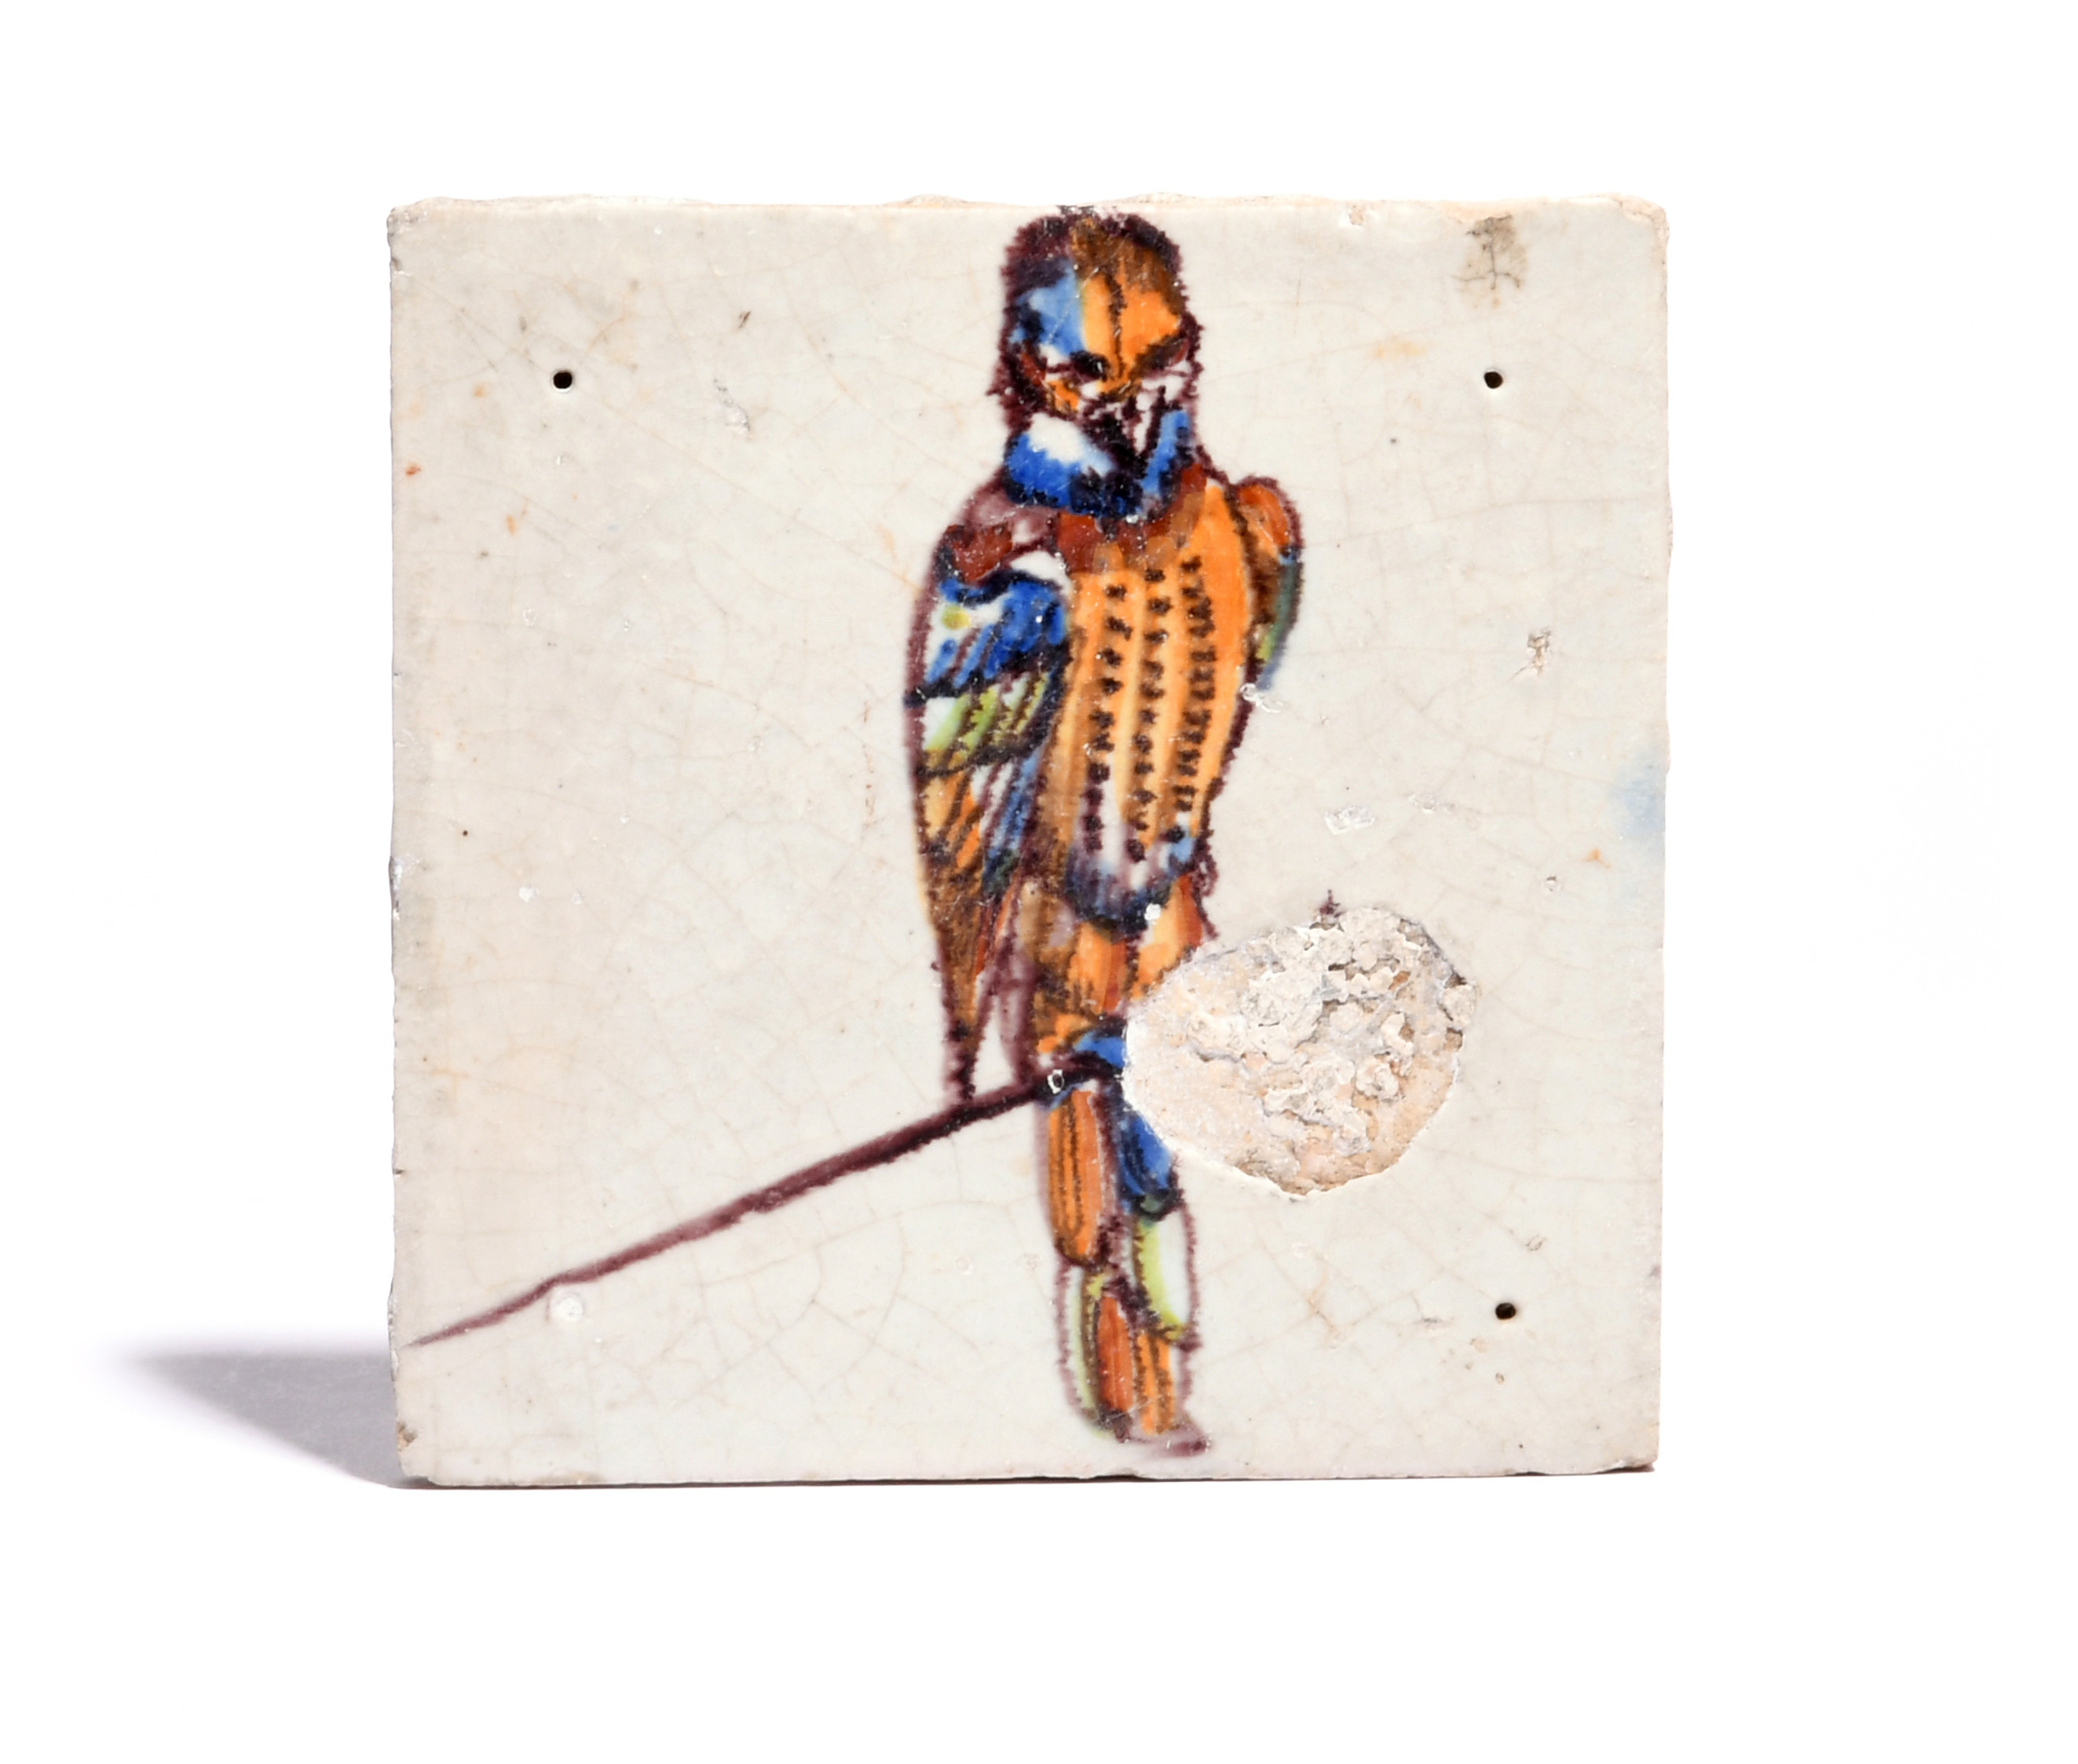 A Gouda Delft 'bird on a nail' tile (spijkertegel) c.1640-60, decorated in polychrome enamels with a